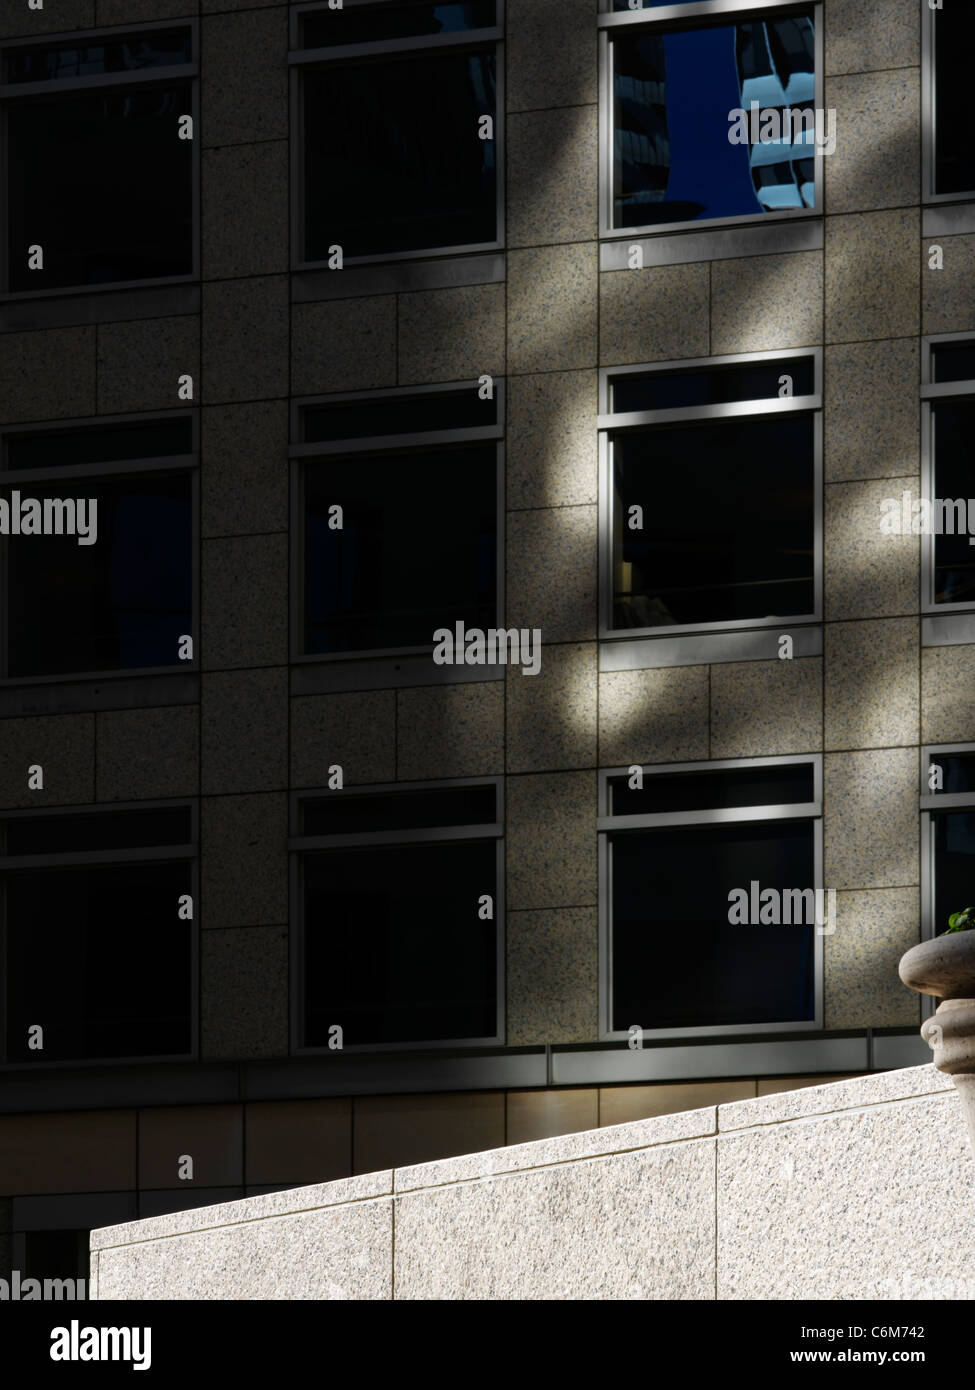 detail of empty office building plaza with stone ledge in bright sunshine seen dramatically against dark building - Stock Image